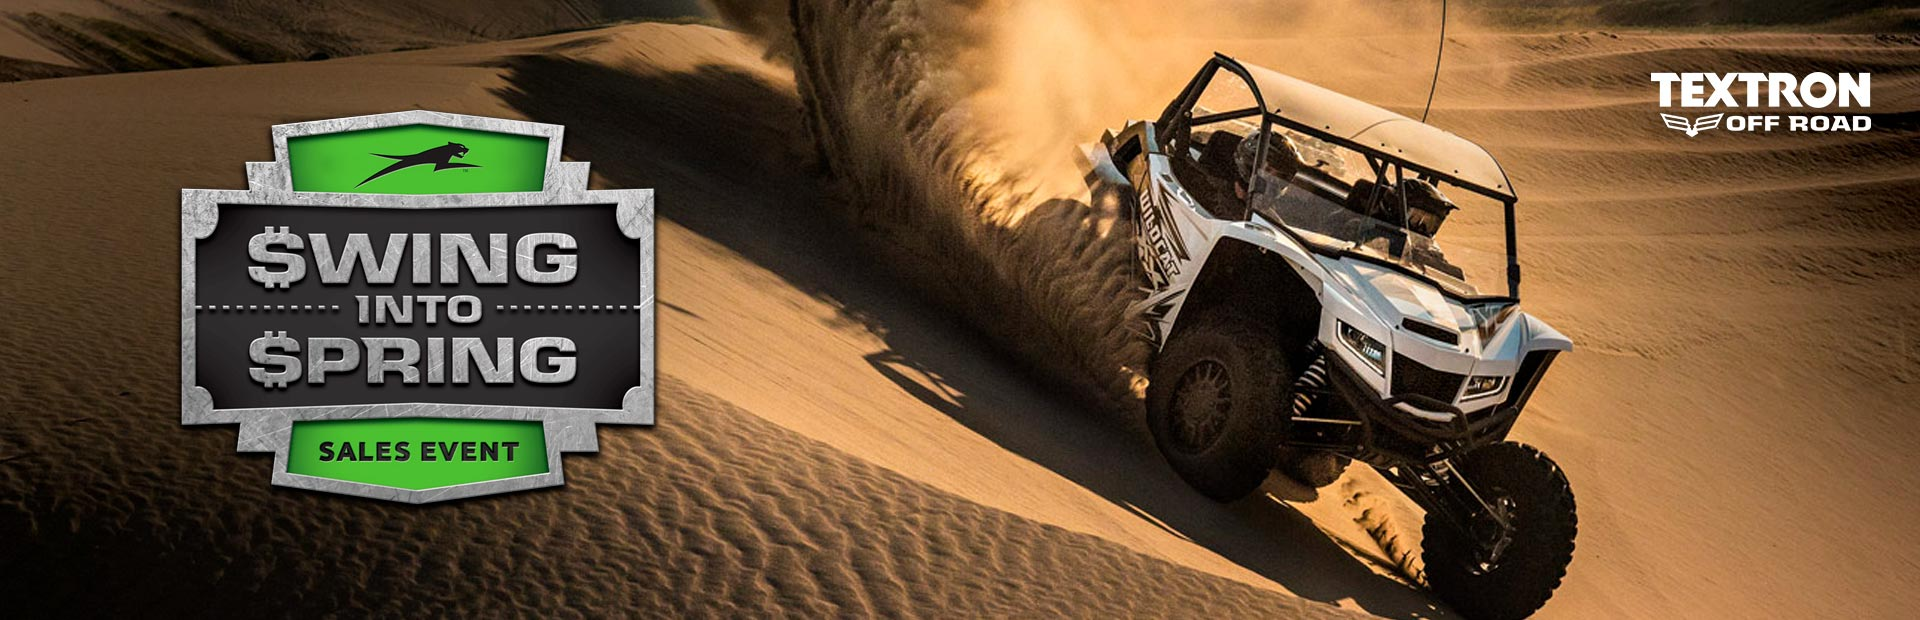 Textron Off Road: Swing Into Spring Sales Event